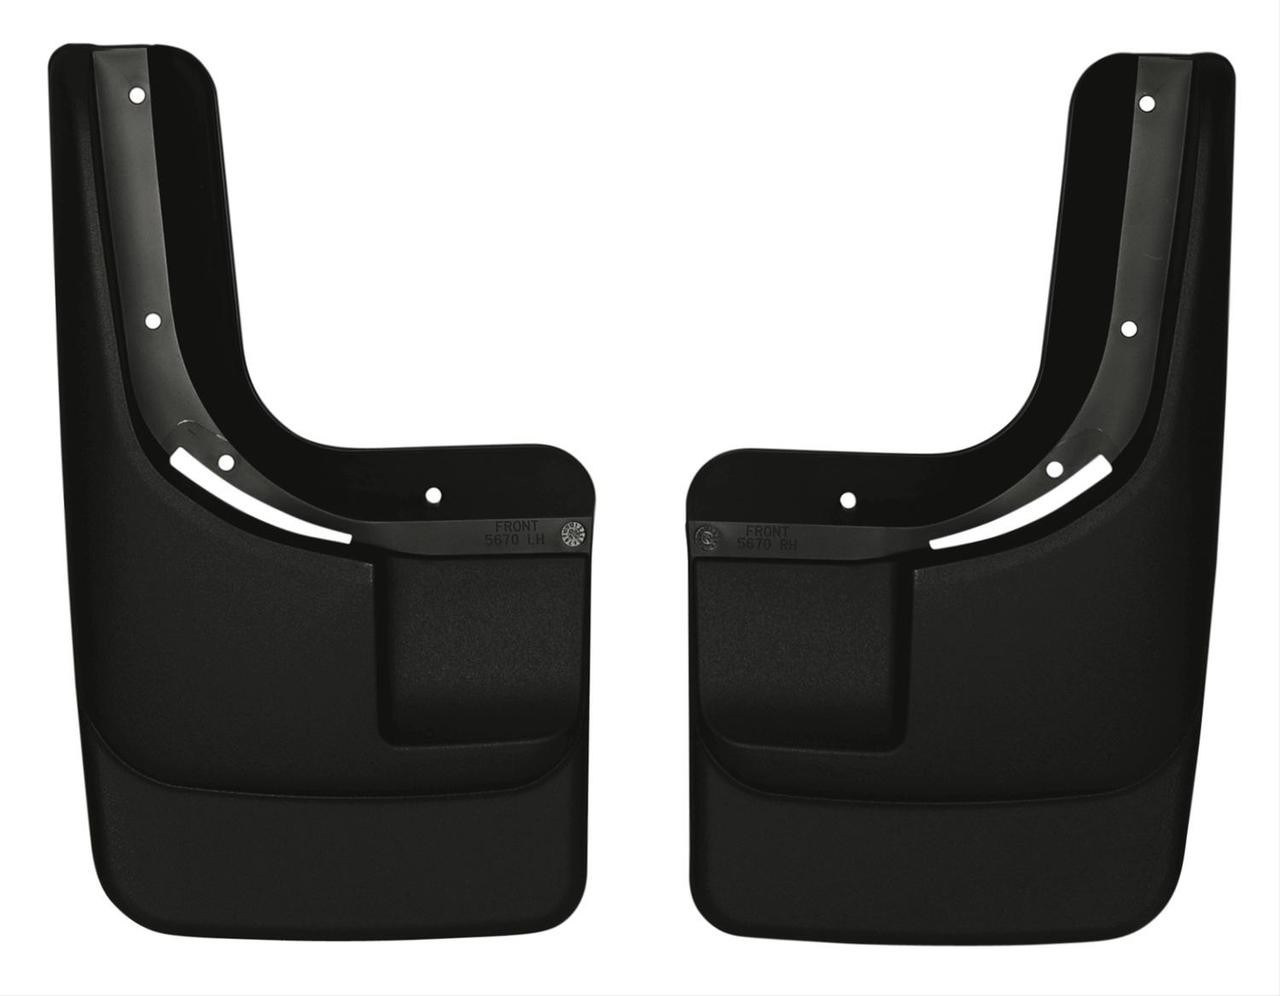 04-12 COLORADO/CANYON W/O FLARES FRONT MUD GUARDS